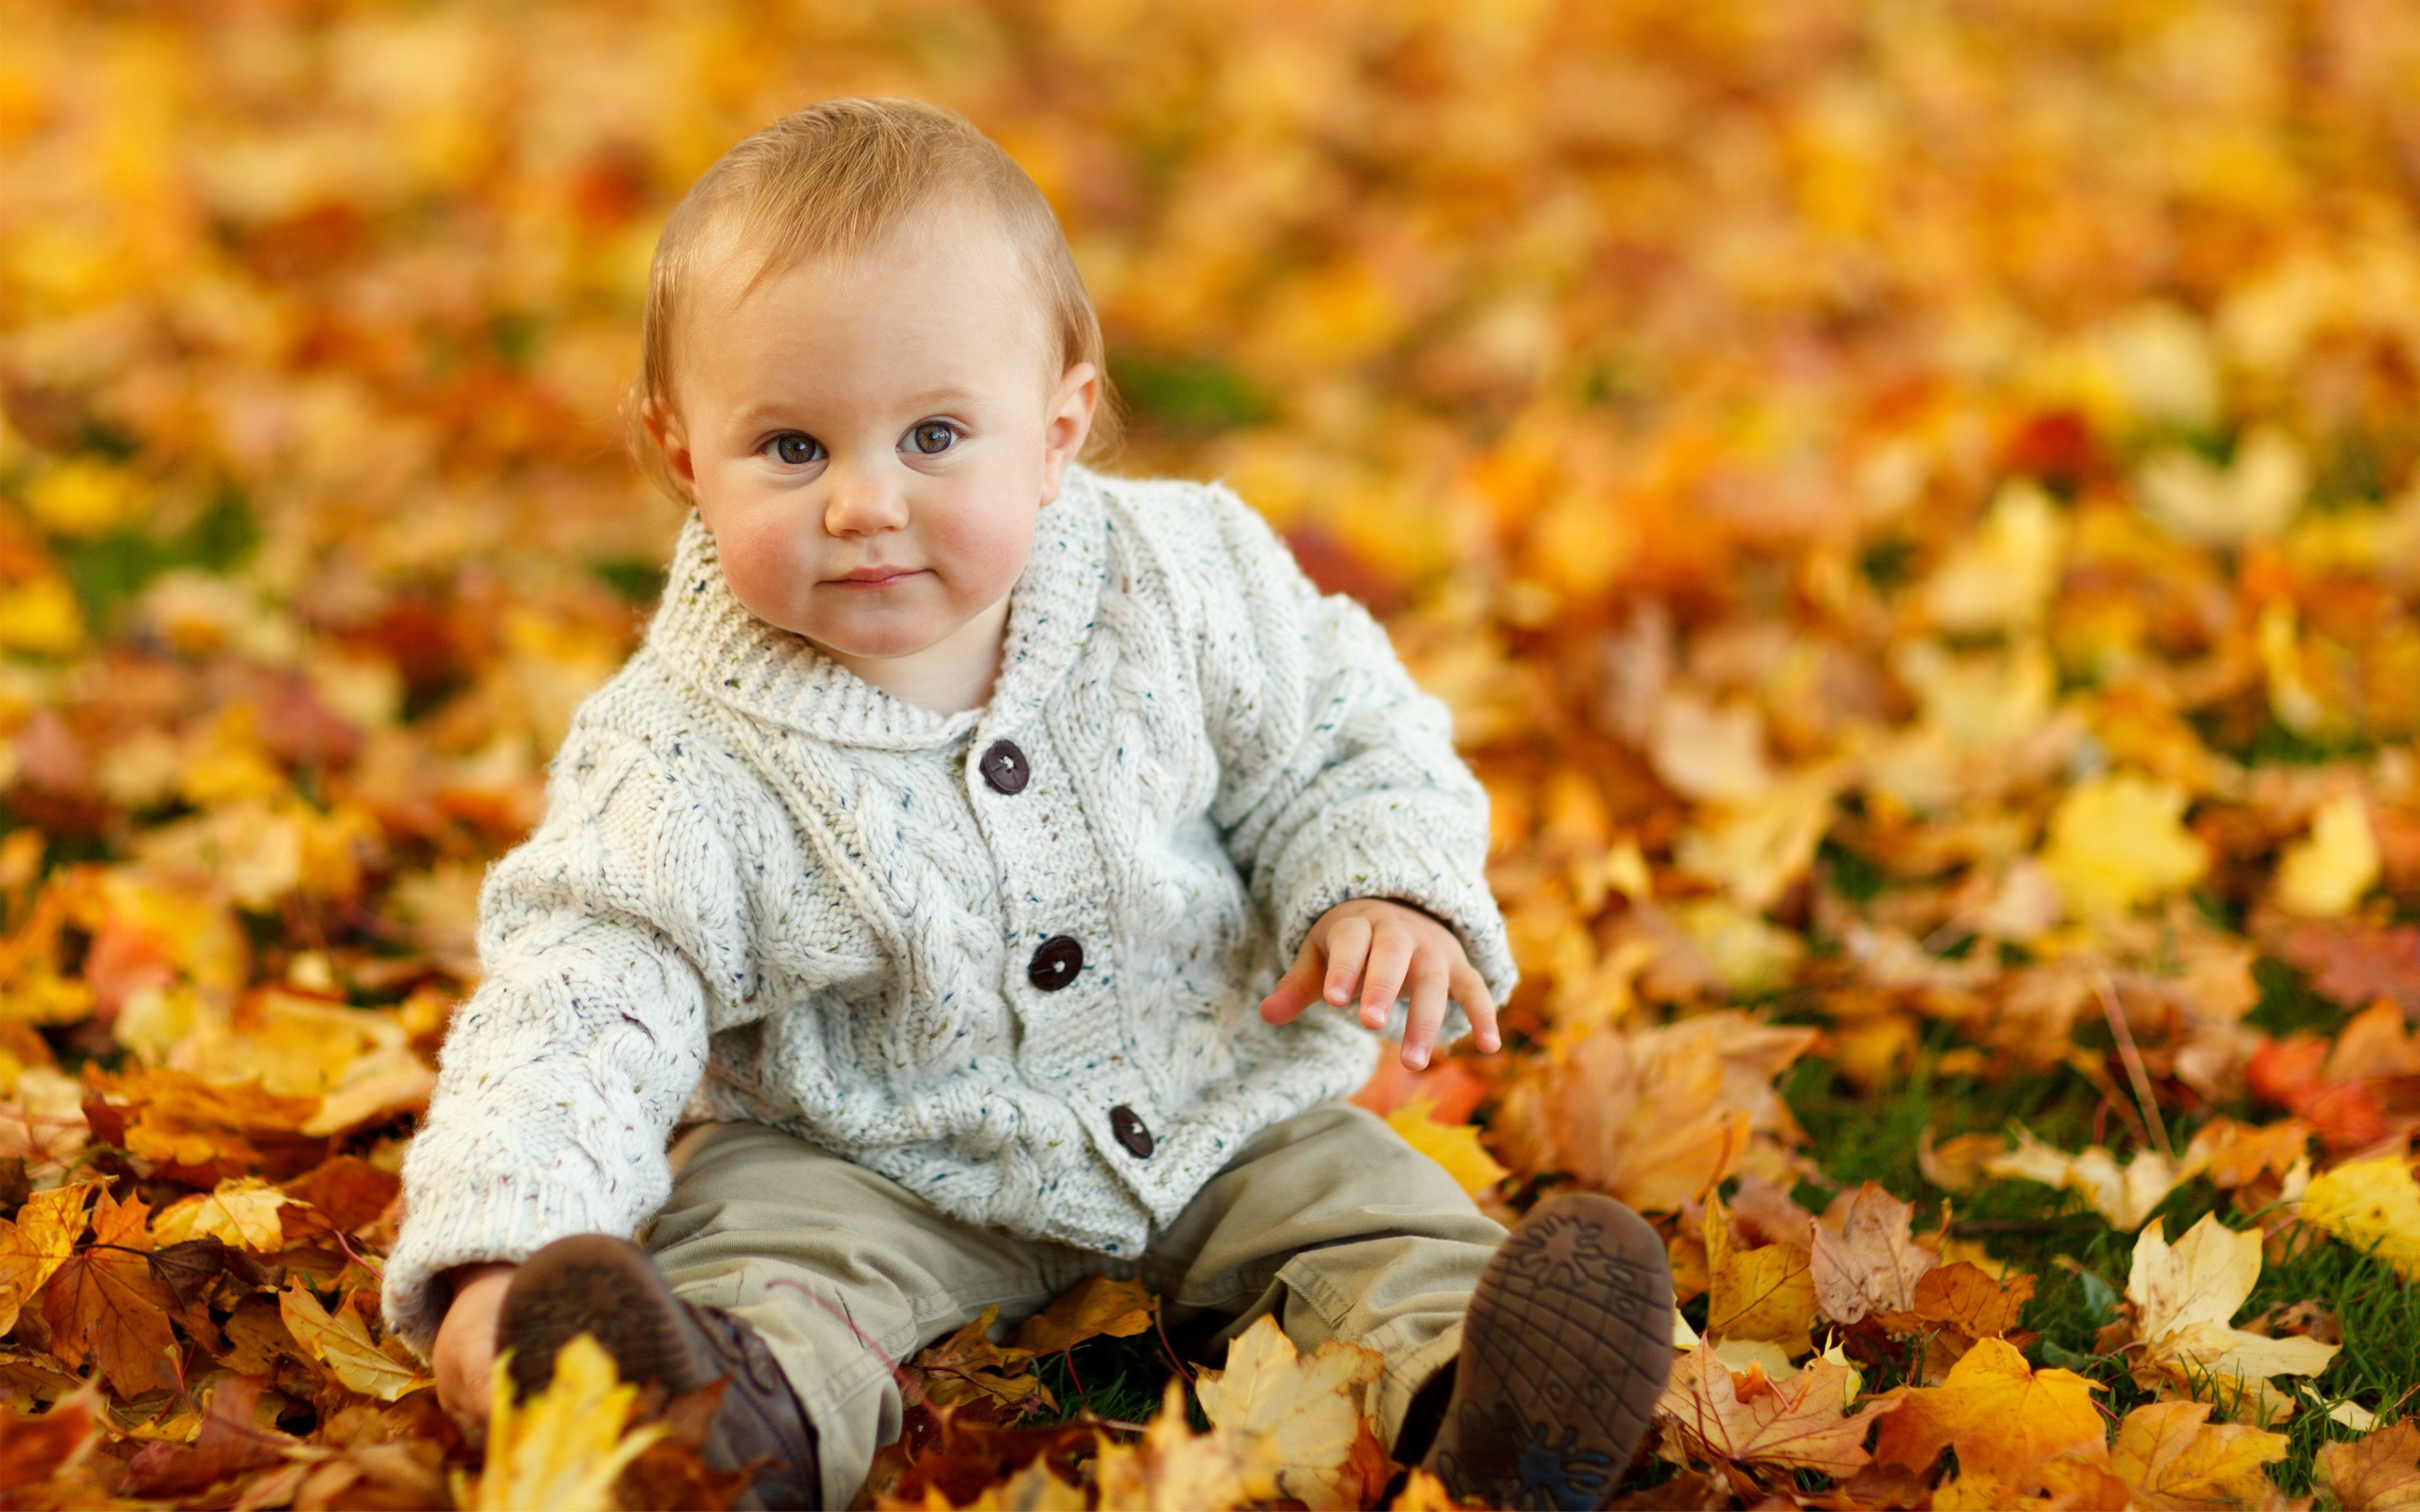 Lovely And Cute Baby Enjoy The Autumn Leaves Wallpaper